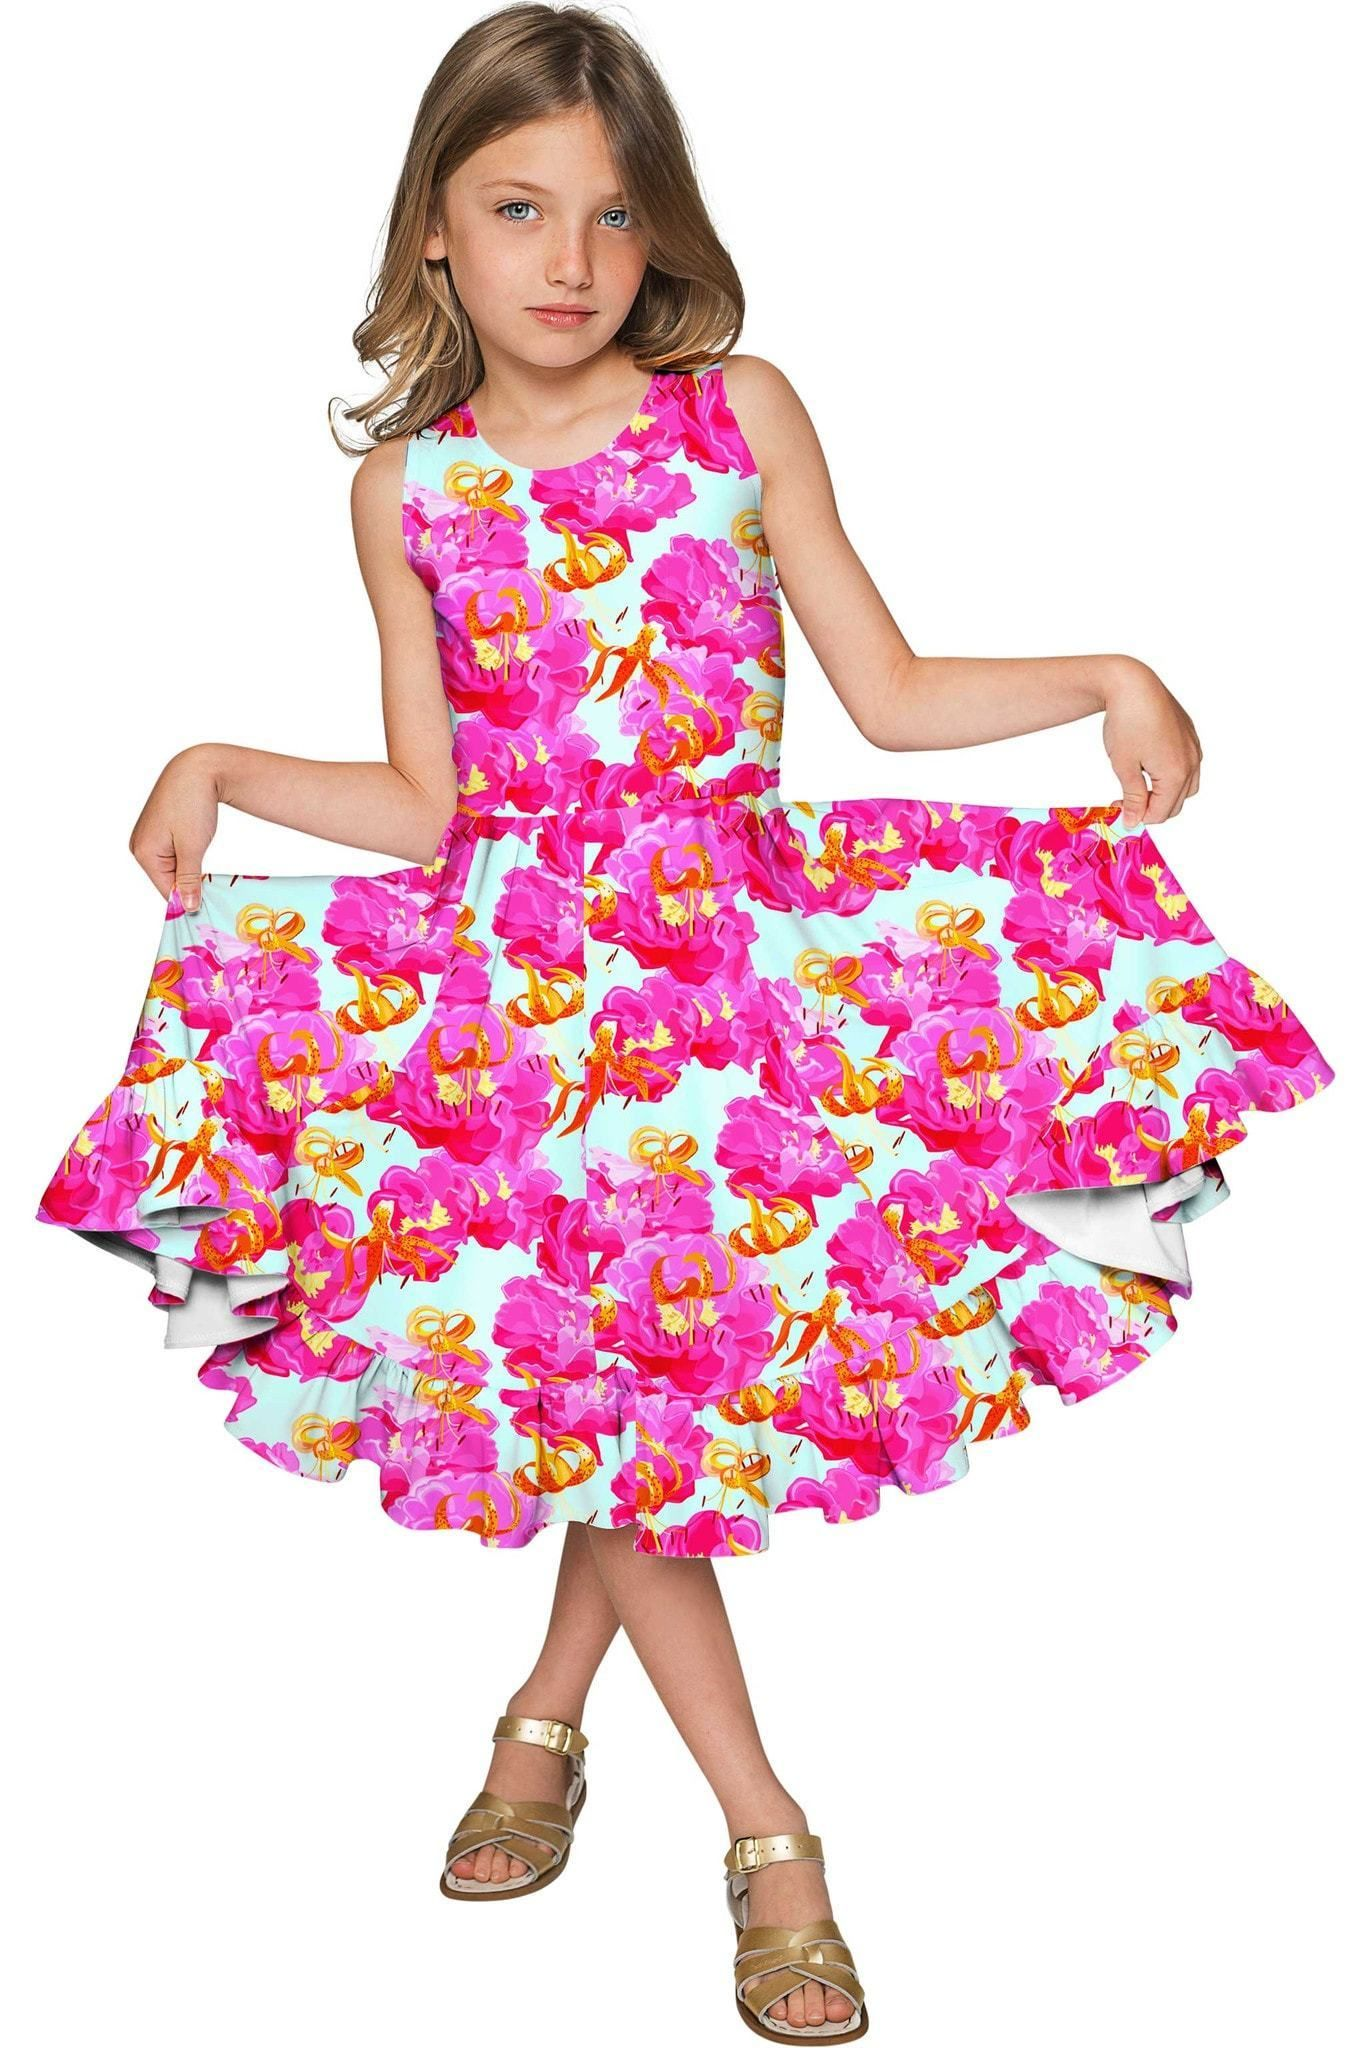 e340991a370b Sweet Illusion Vizcaya Fit & Flare Pink Floral Party Dress - Girls ...